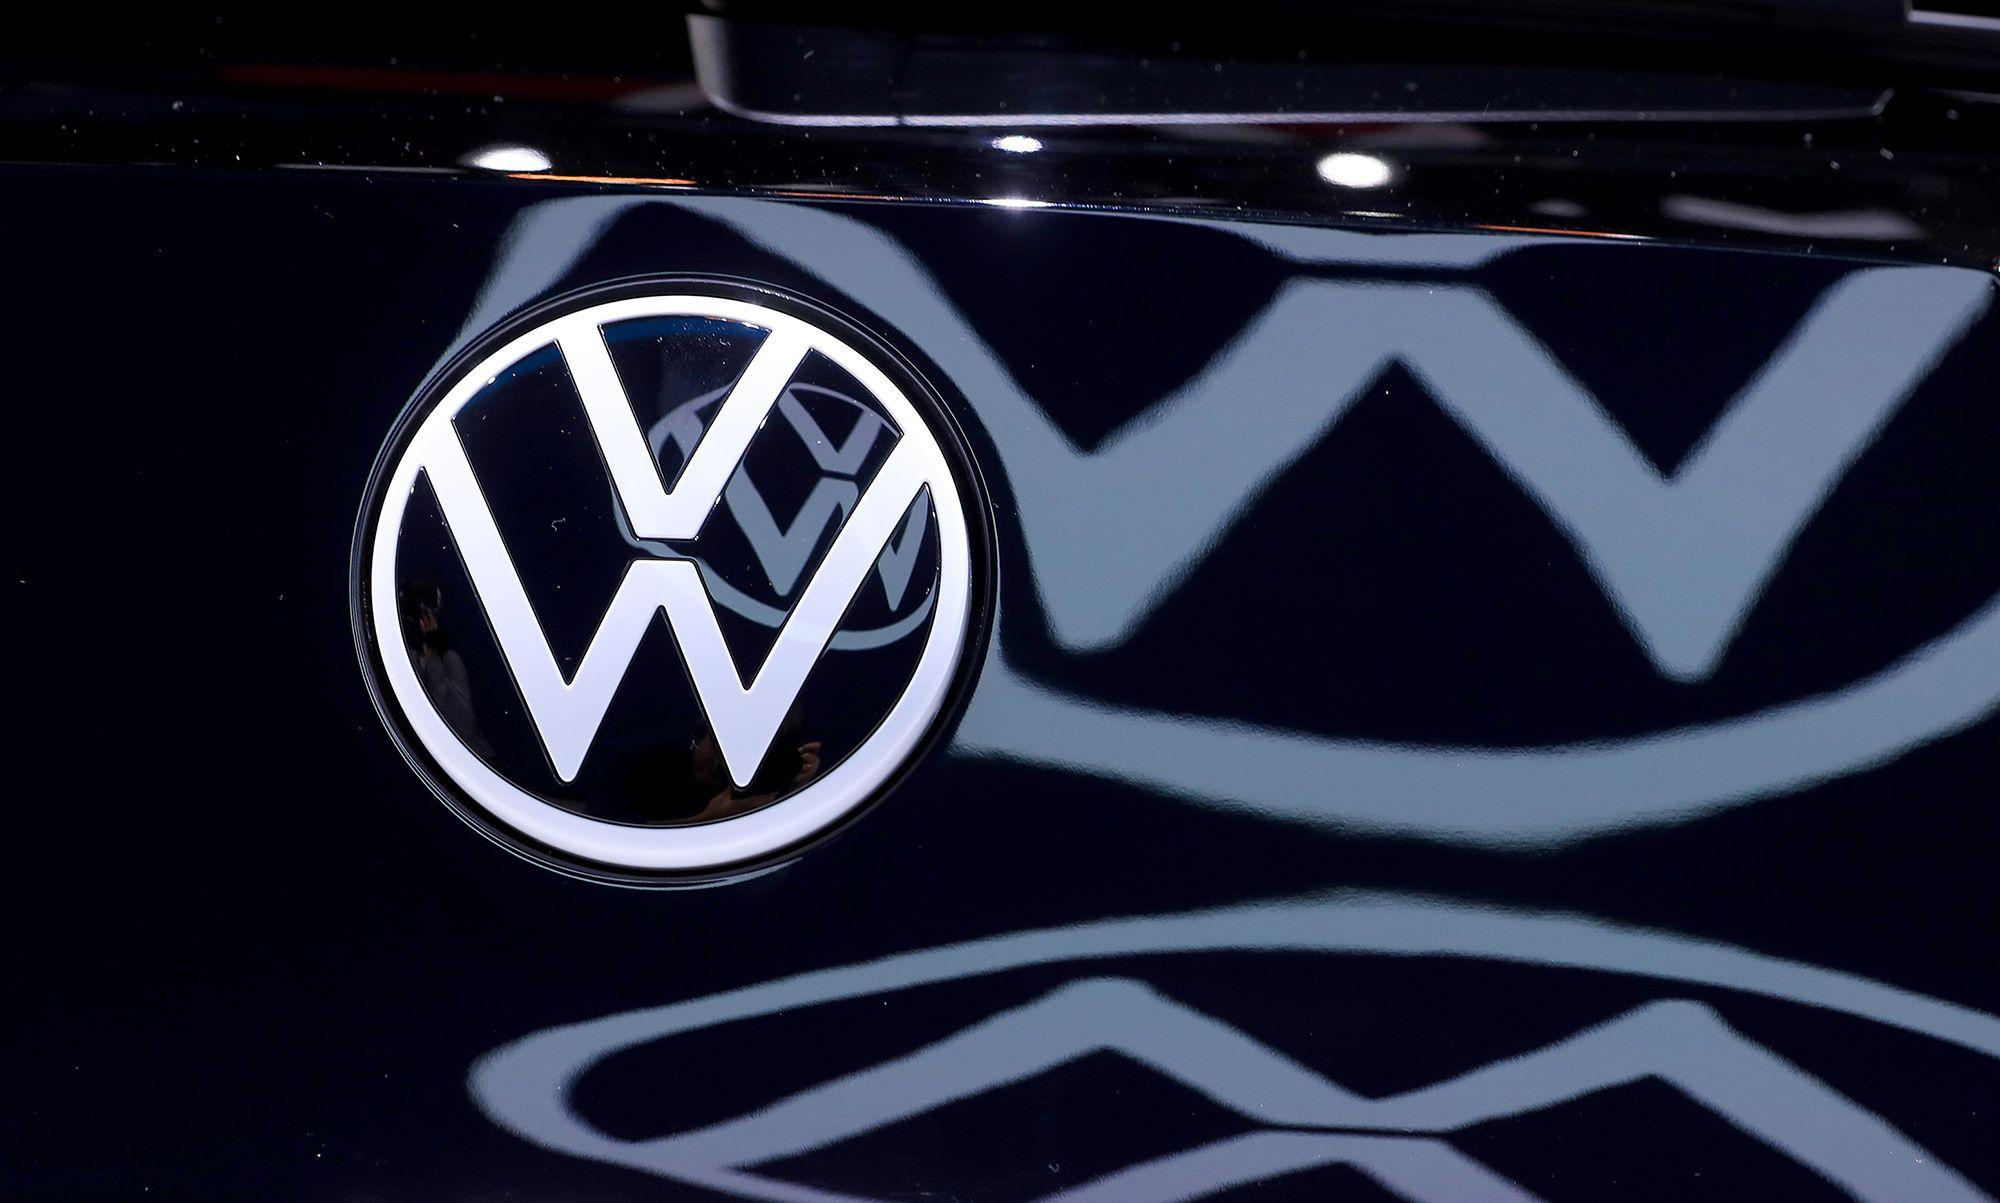 Volkswagen postpones final decision on Turkey plant: spokesman